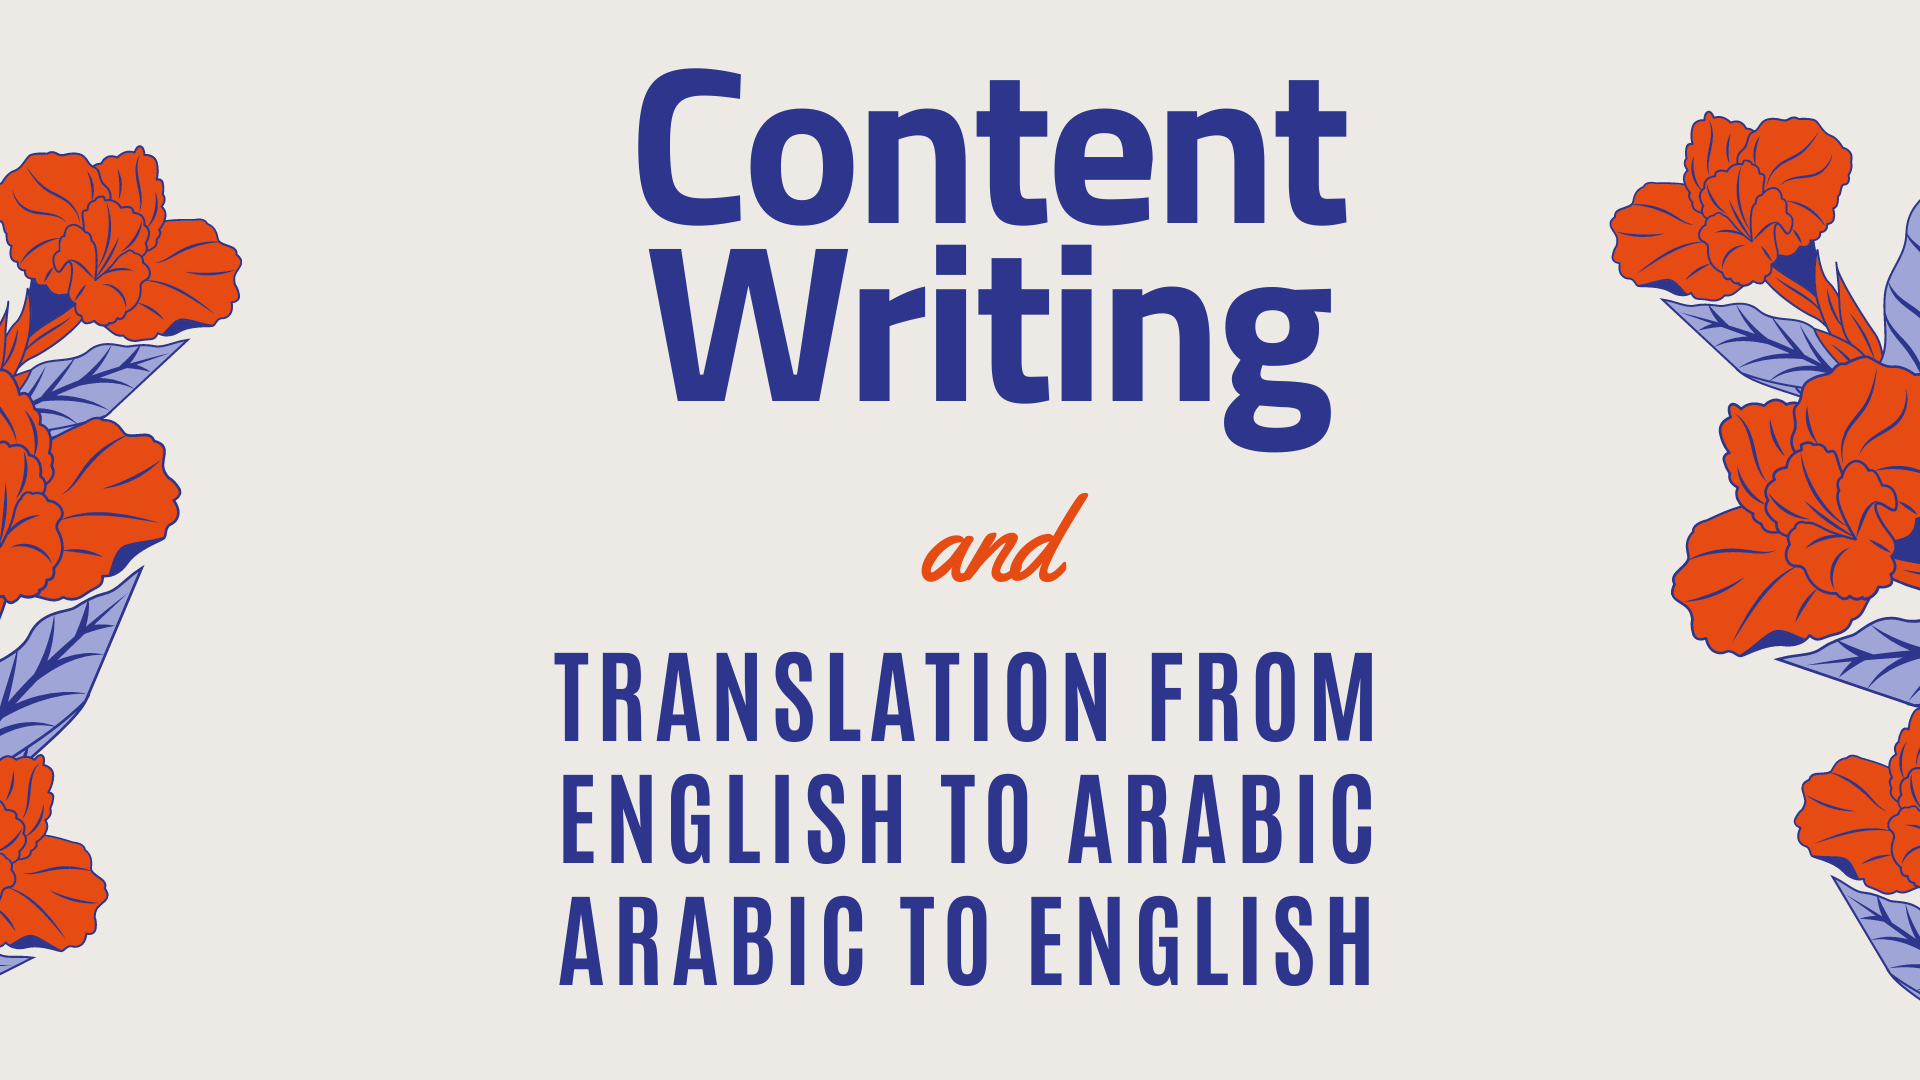 Translate Arabic to English 1000 Words In 48 Hours